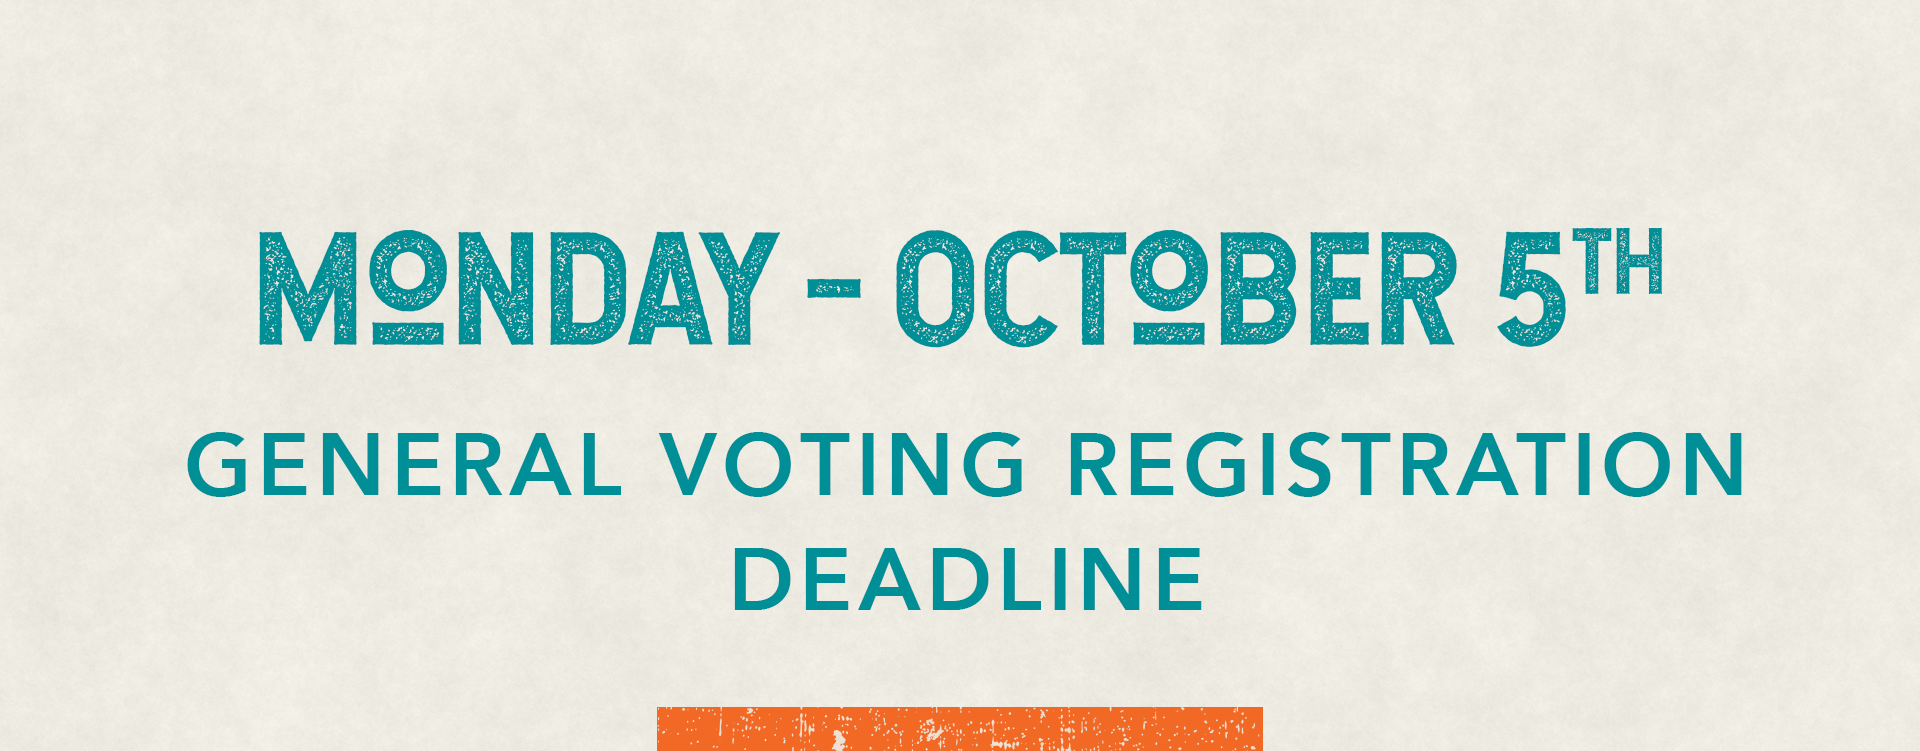 Graphic: Monday October 5th - General Voting Registration Deadline